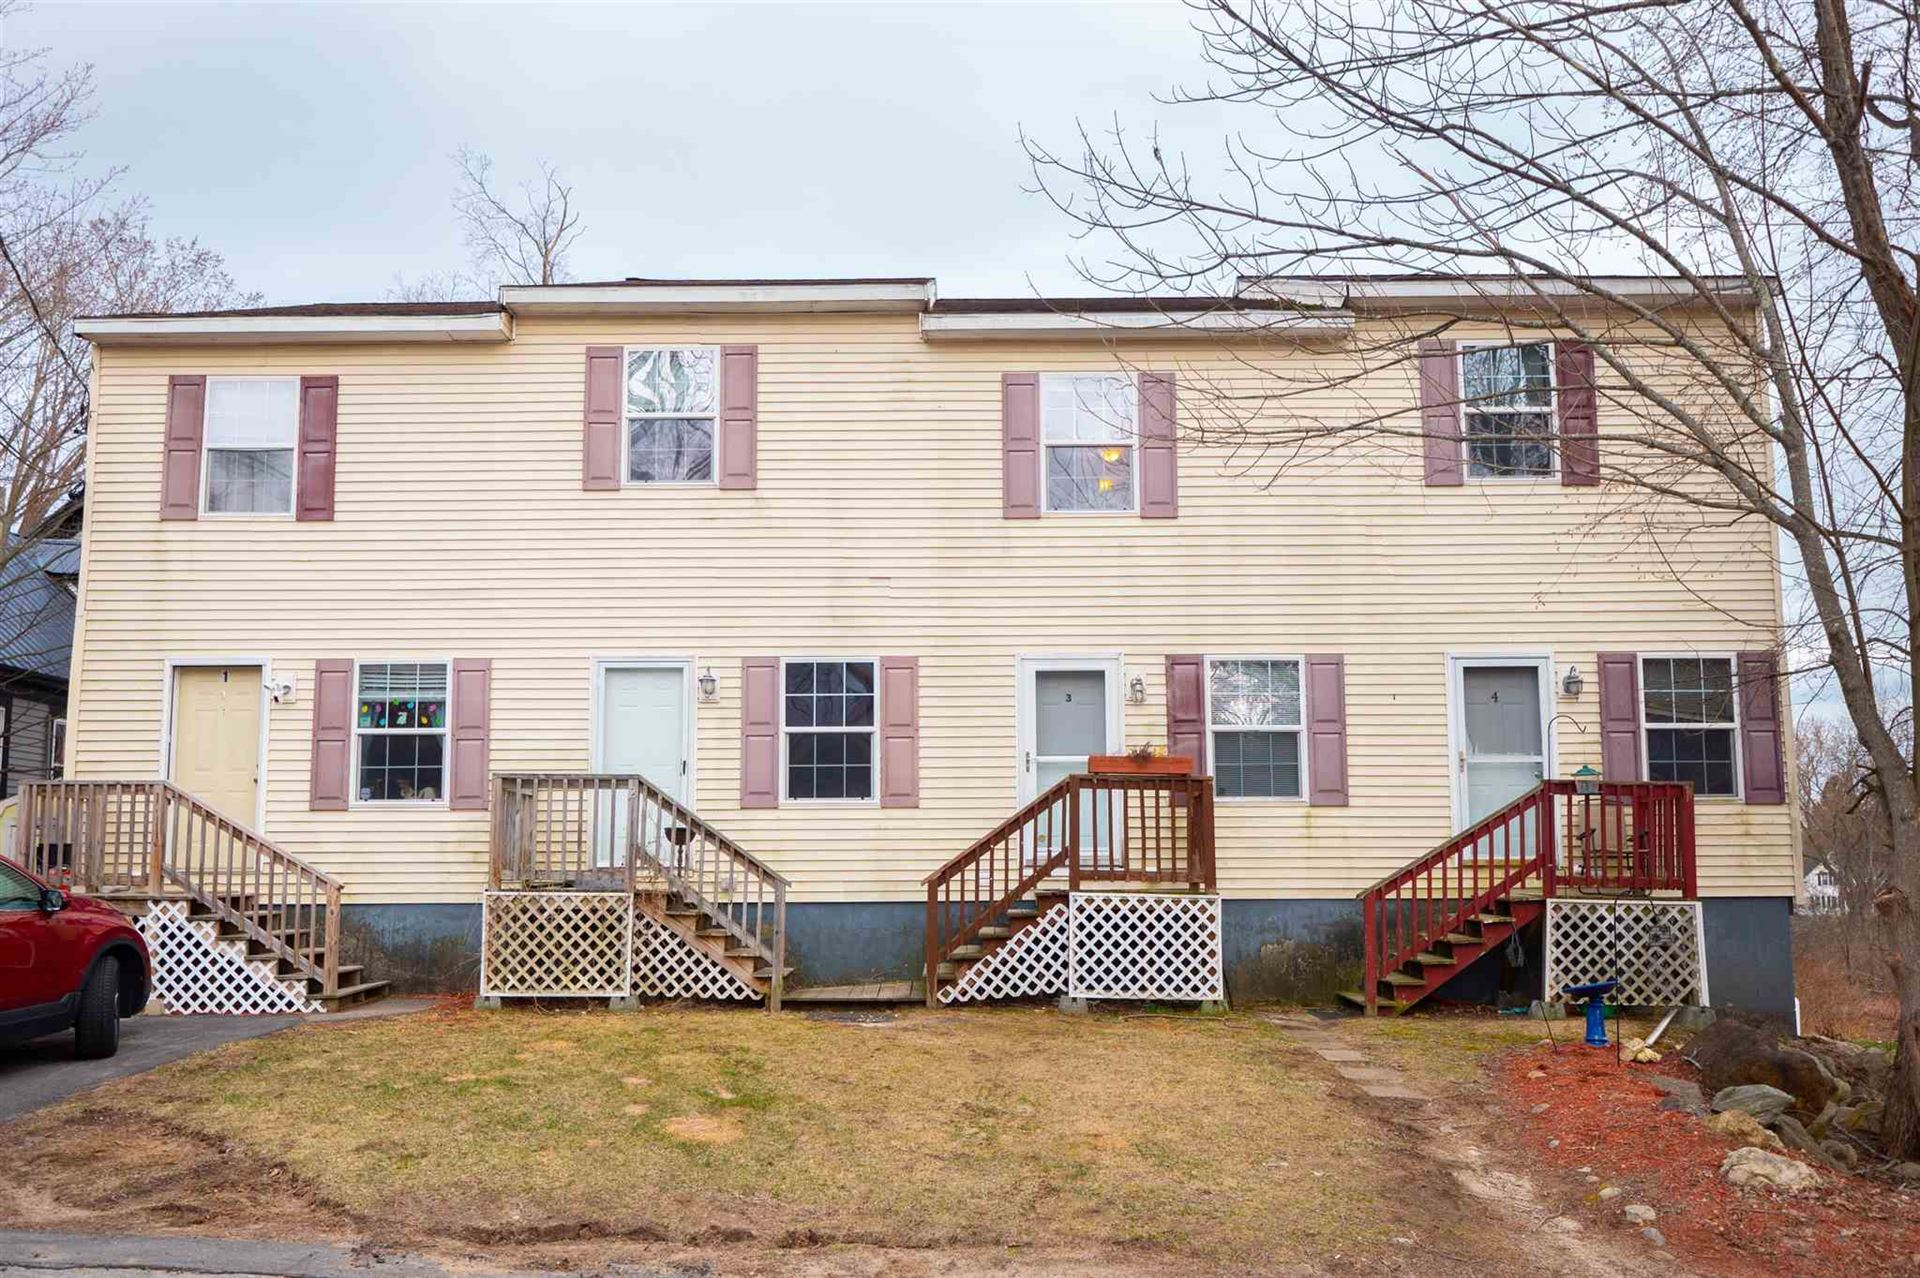 67 Glen Street #3, Farmington, NH 03835 - MLS#: 4855303